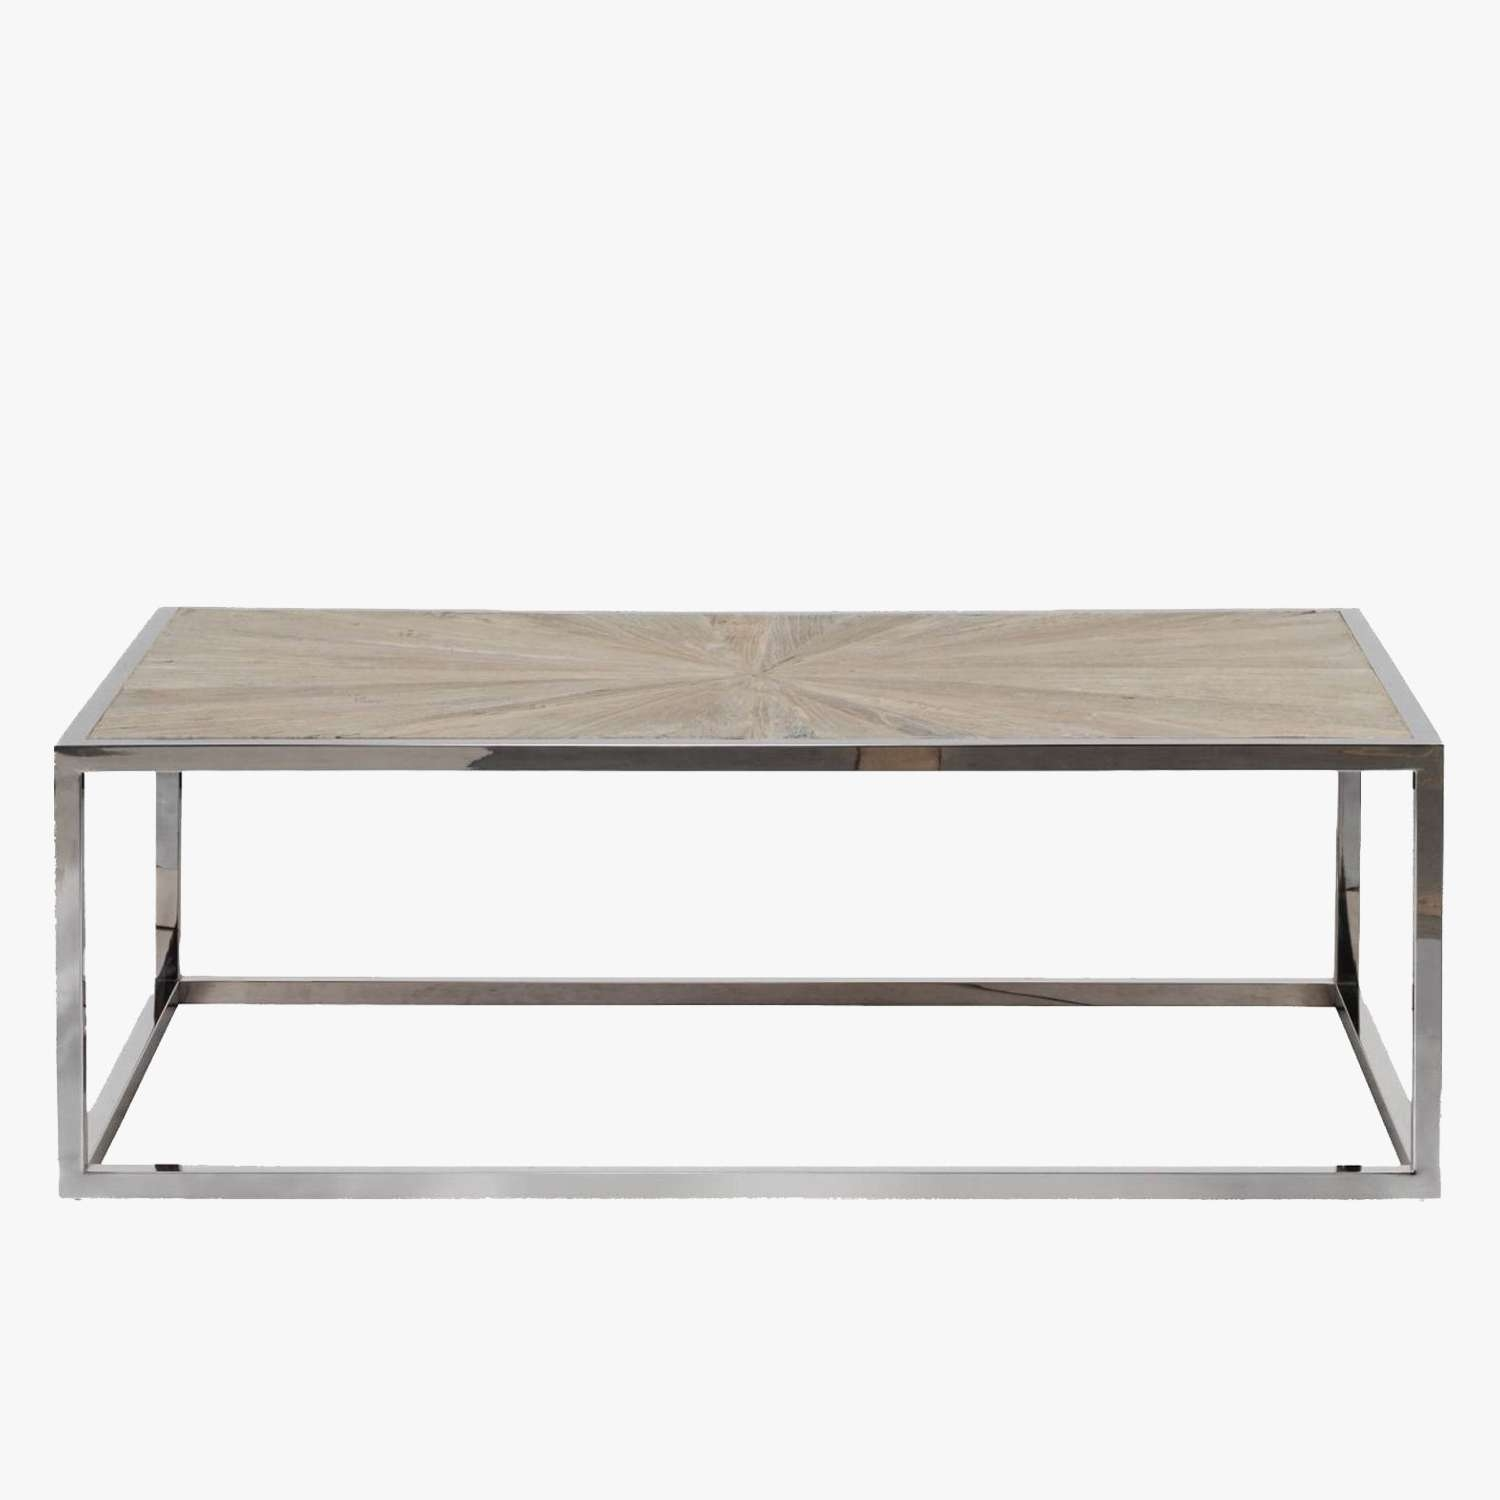 Coffee Tables : Bear Coffee Table With Glass Top Industrial Rustic With Regard To Favorite Low Industrial Coffee Tables (View 2 of 20)